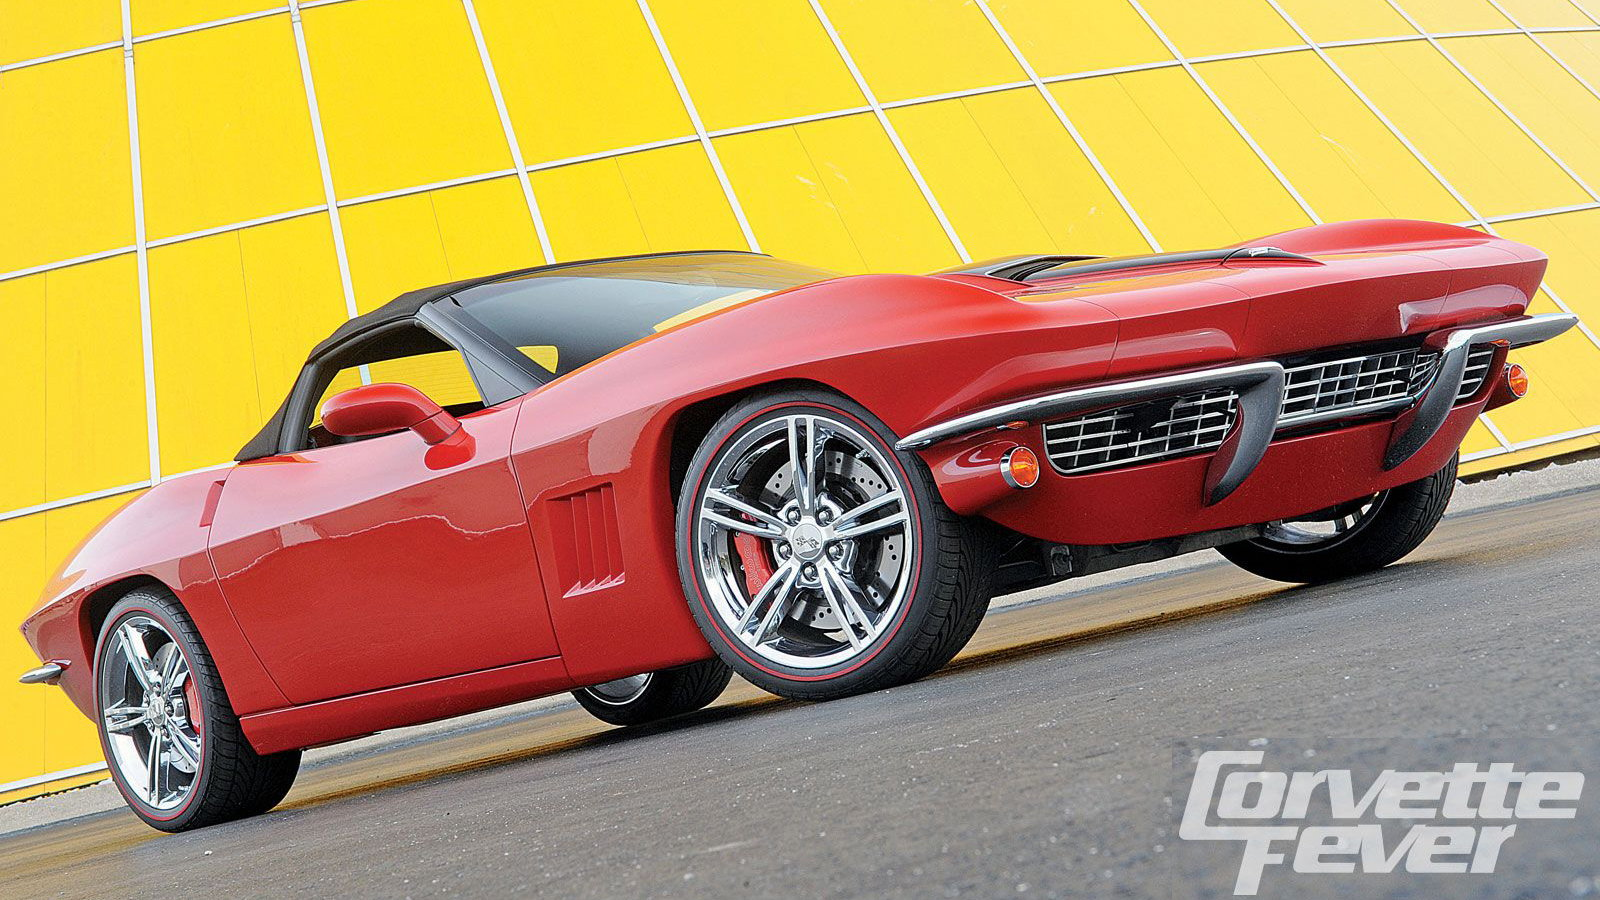 Is Karl Kustom Corvettes' C2 Replica Better than the Real Thing?